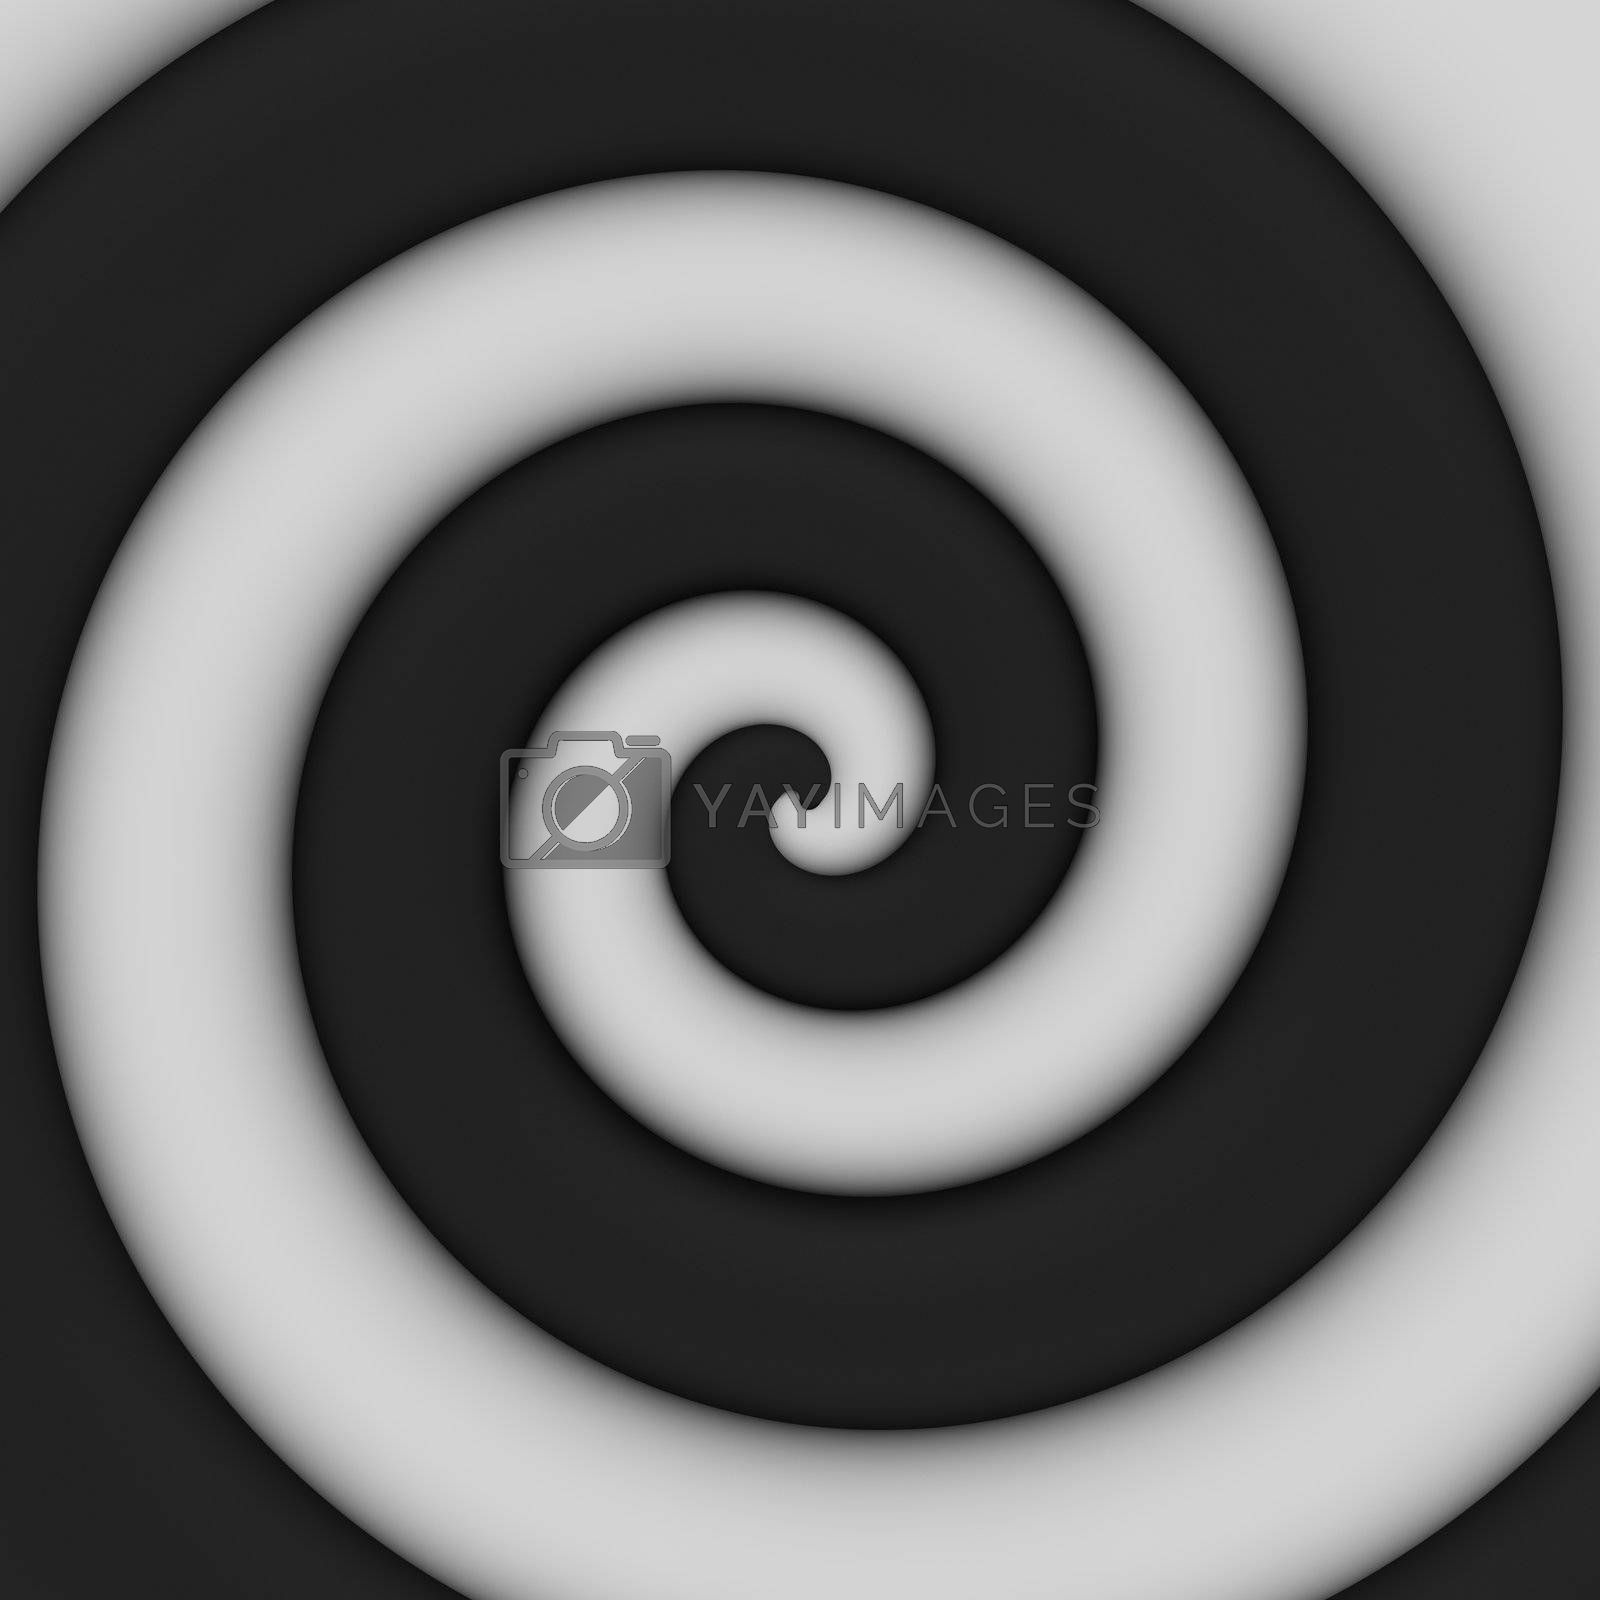 Abstract background of contrast black-and-white spiral swirl